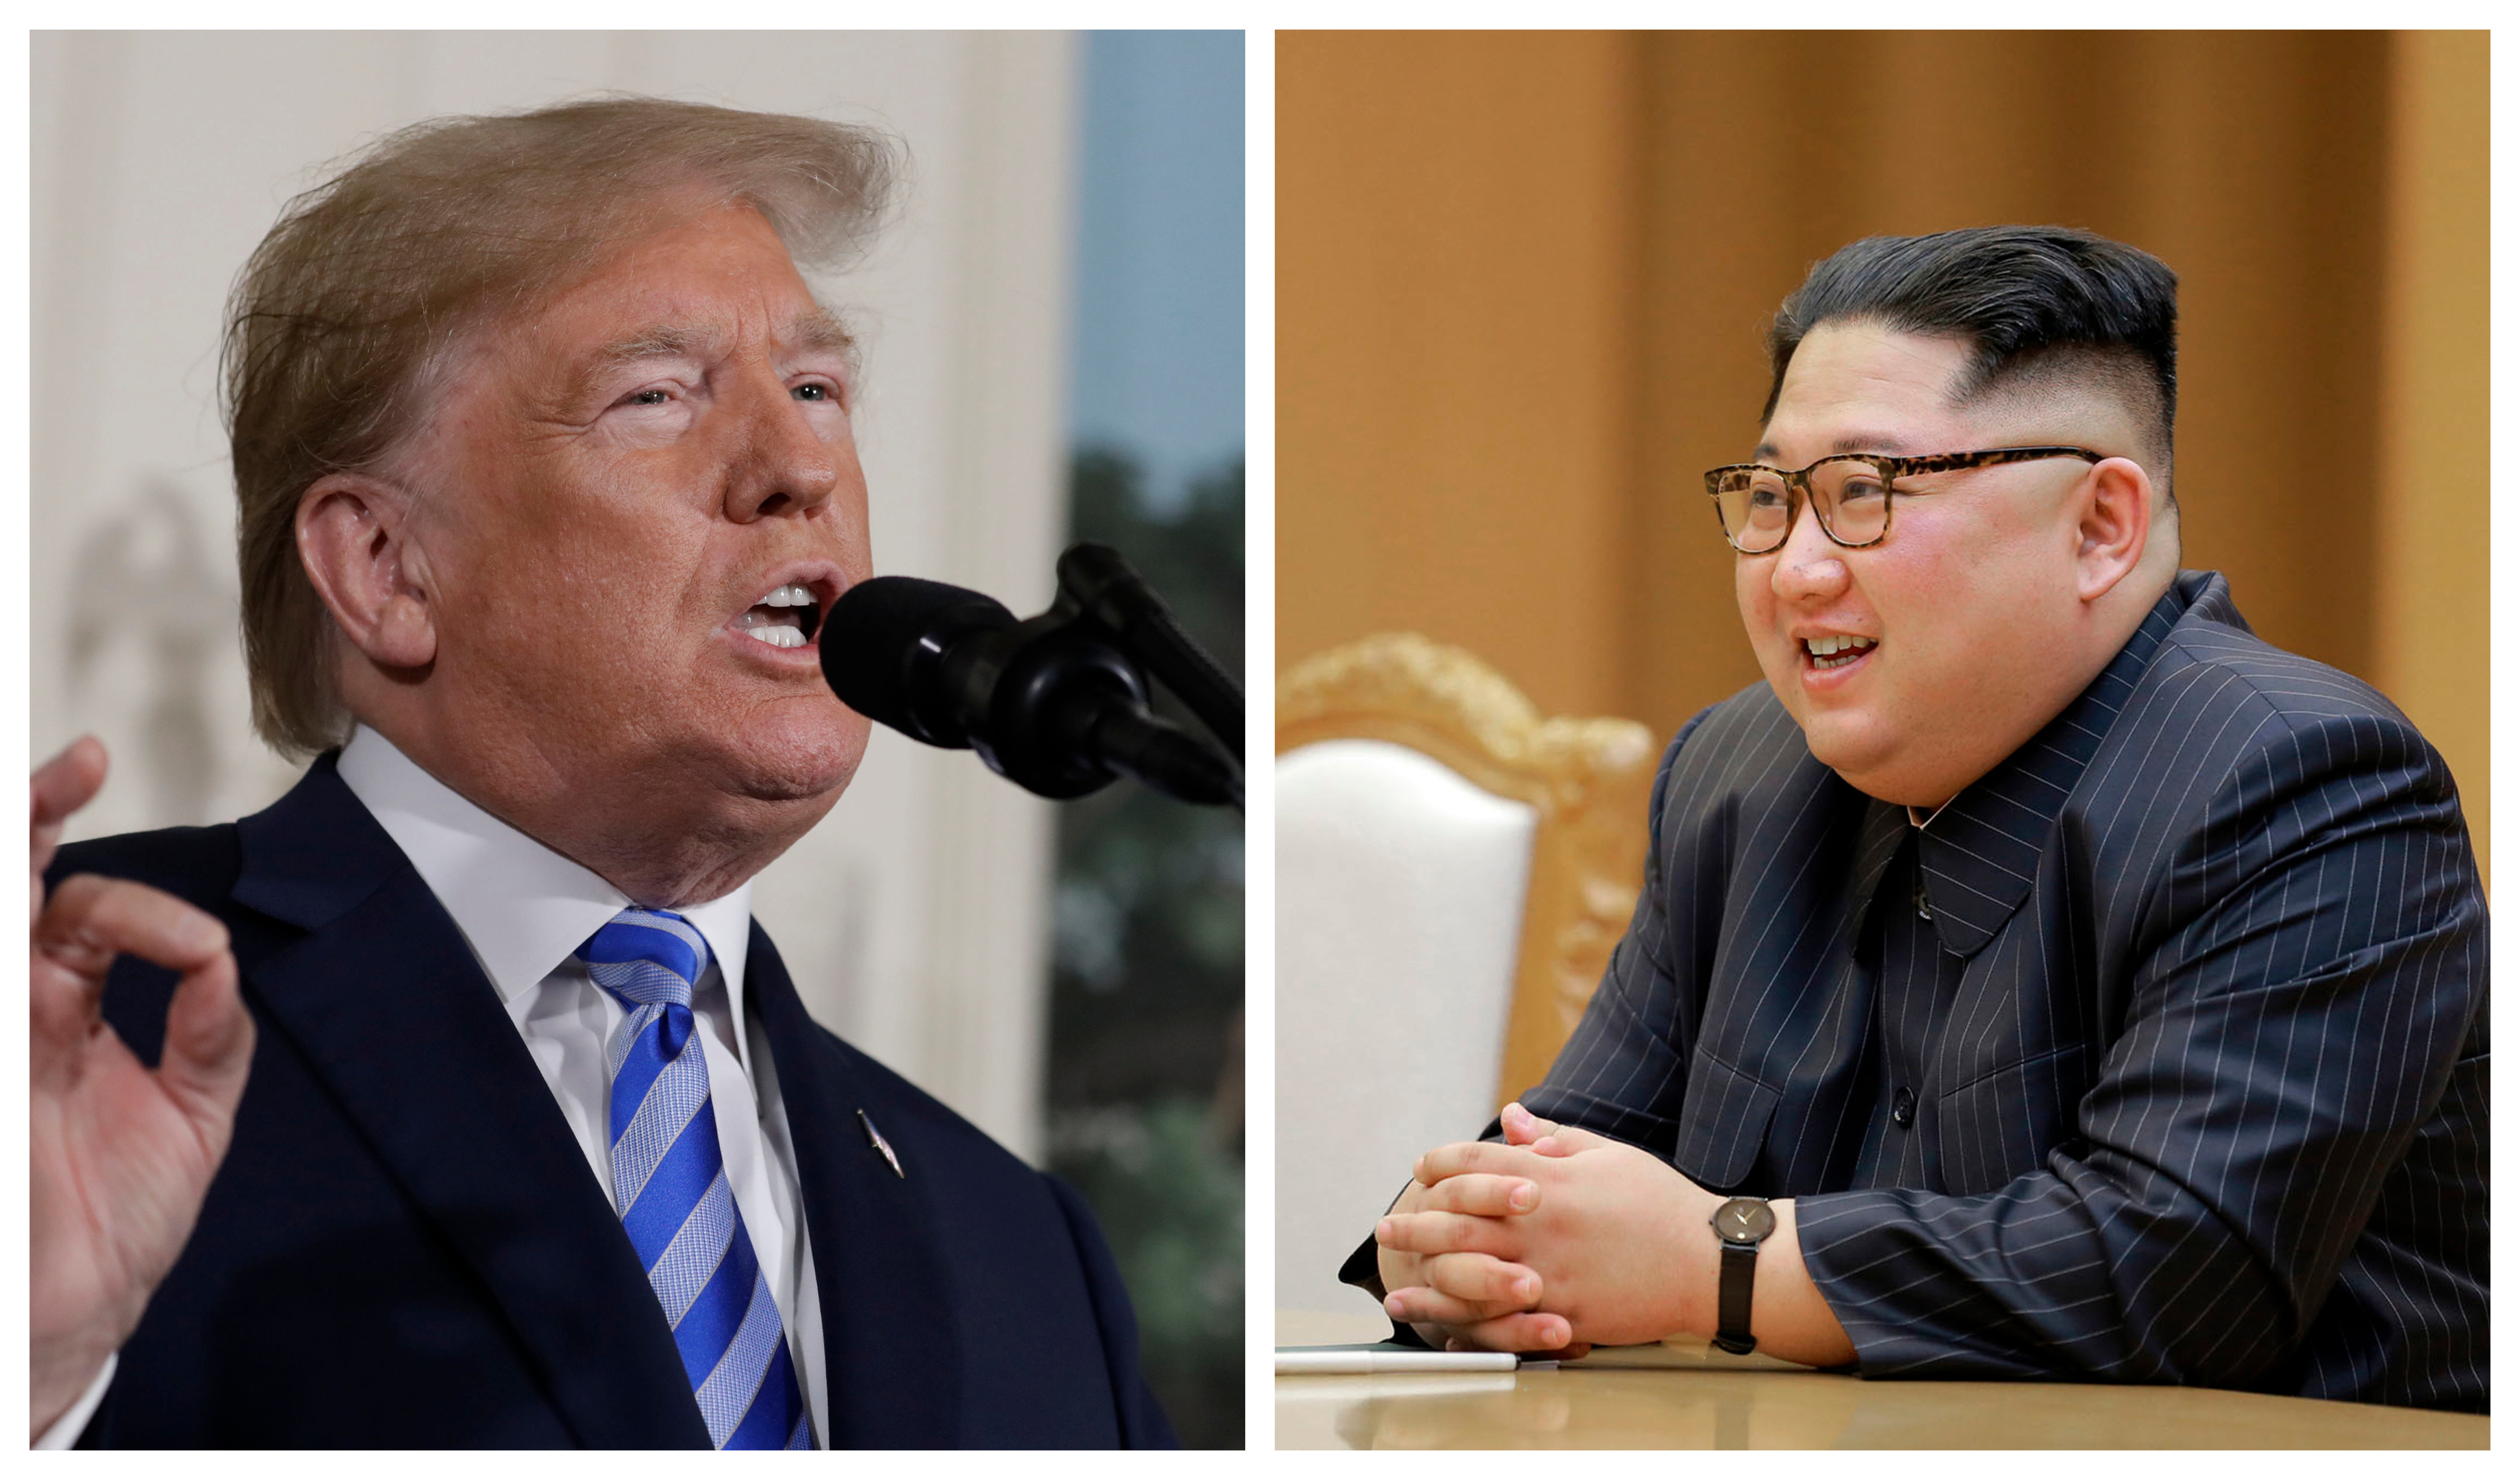 Donald Trump will come face to face with Kim Jong Un this summer